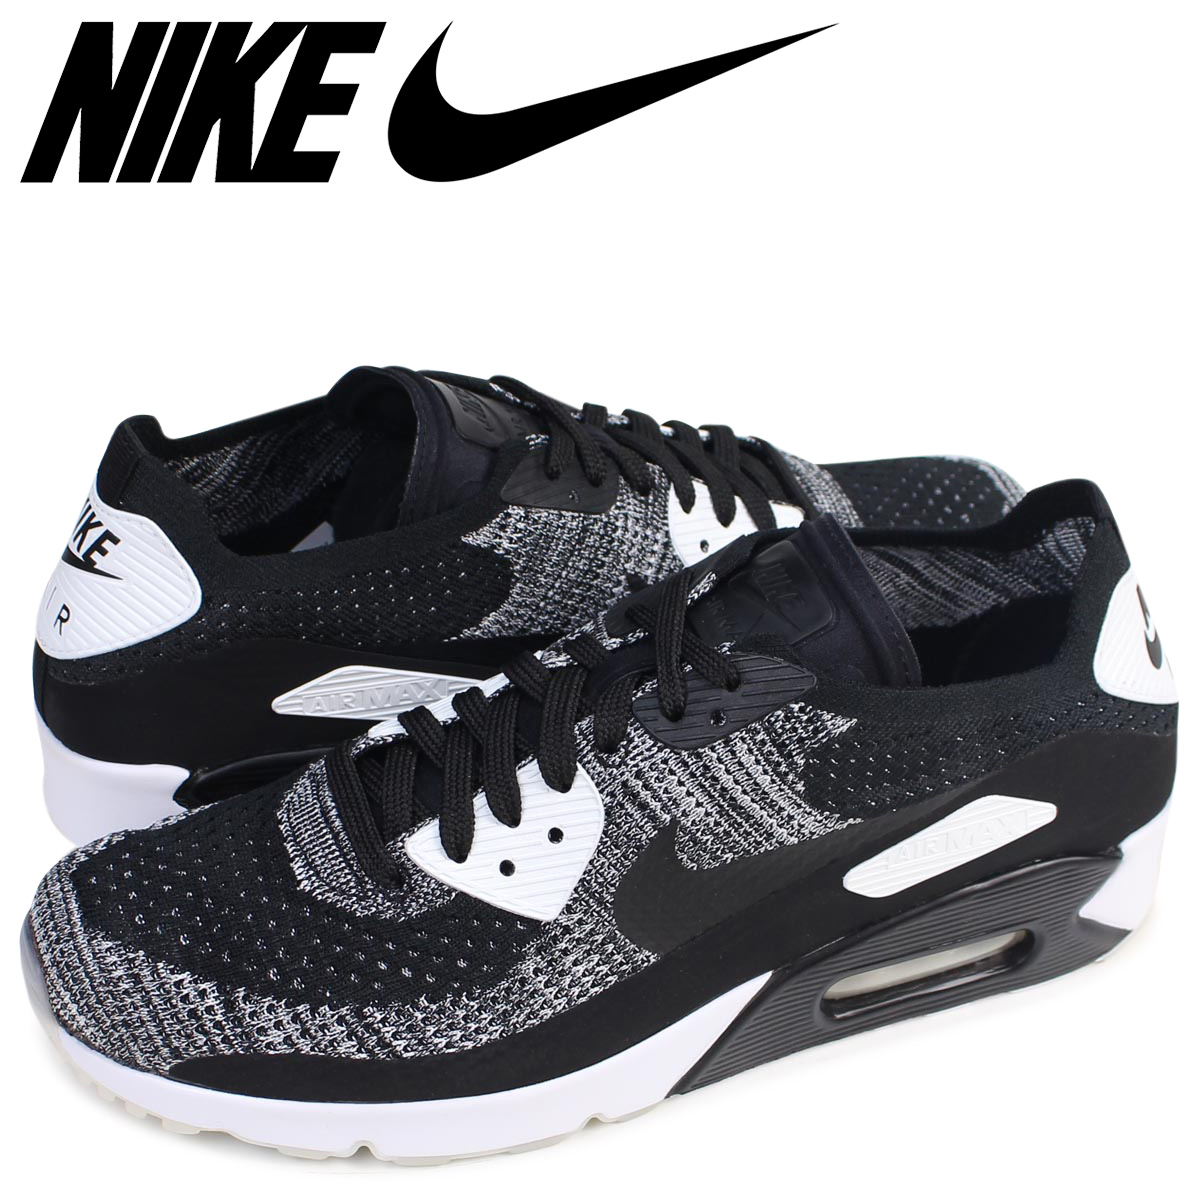 sports shoes 283d9 1ac7c NIKE Kie Ney AMAX 90 ultra fly knit sneakers AIR MAX 90 ULTRA 2.0 FLYKNIT  875,943-001 men's shoes black [load planned Shinnyu load in reservation ...